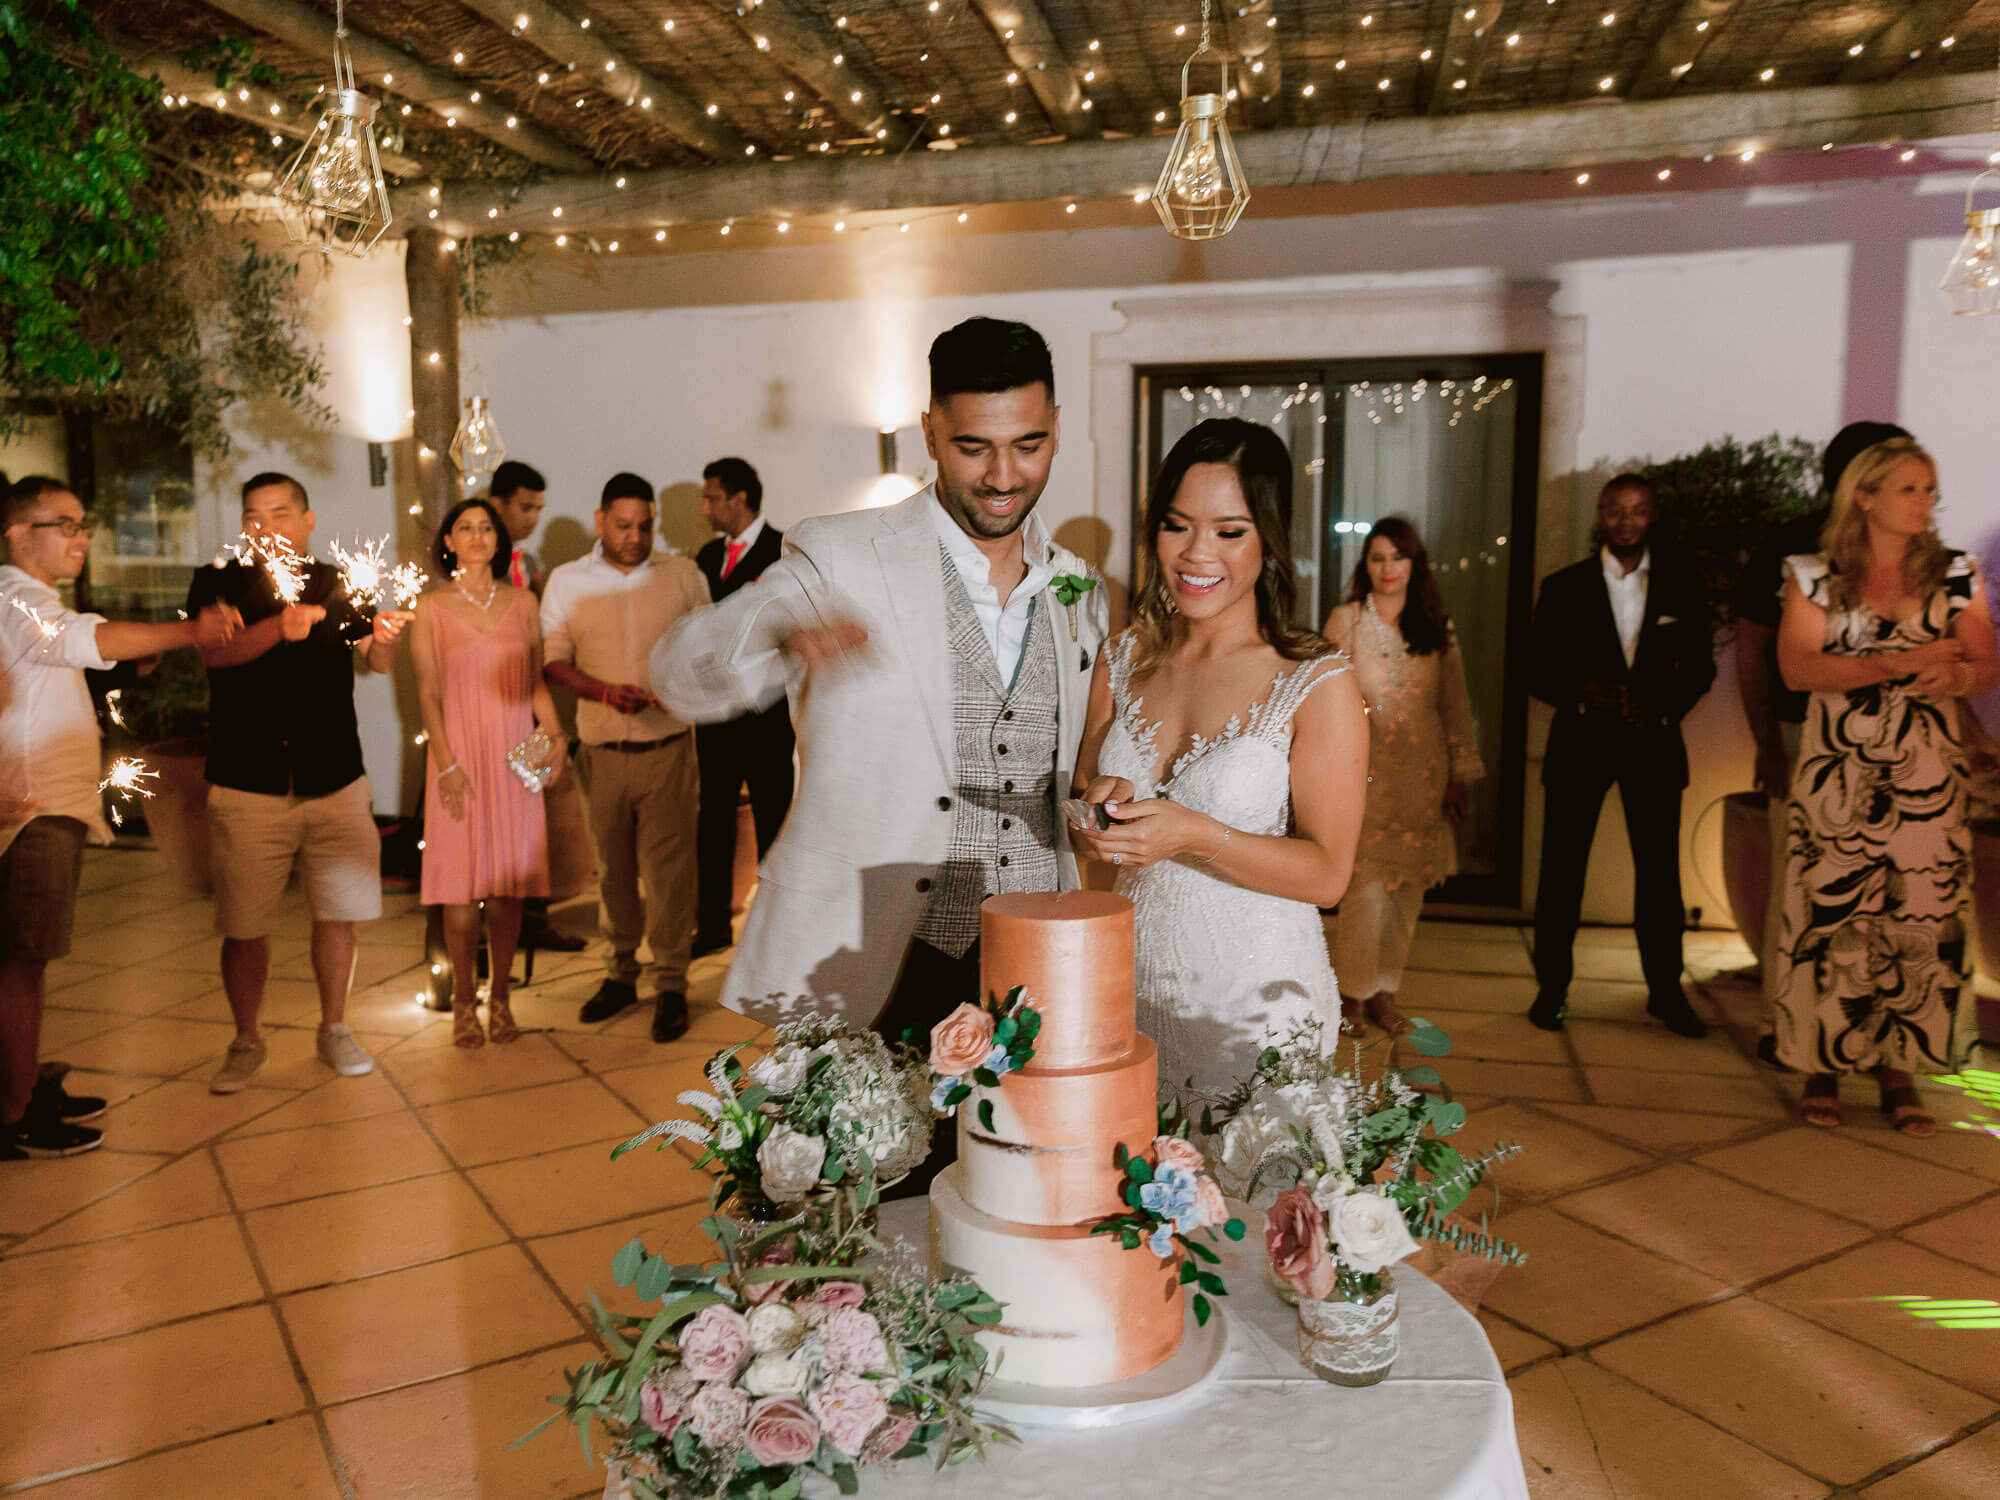 cake cutting ceremony at a destination wedding in the Algarve by Portugal Wedding Photographer